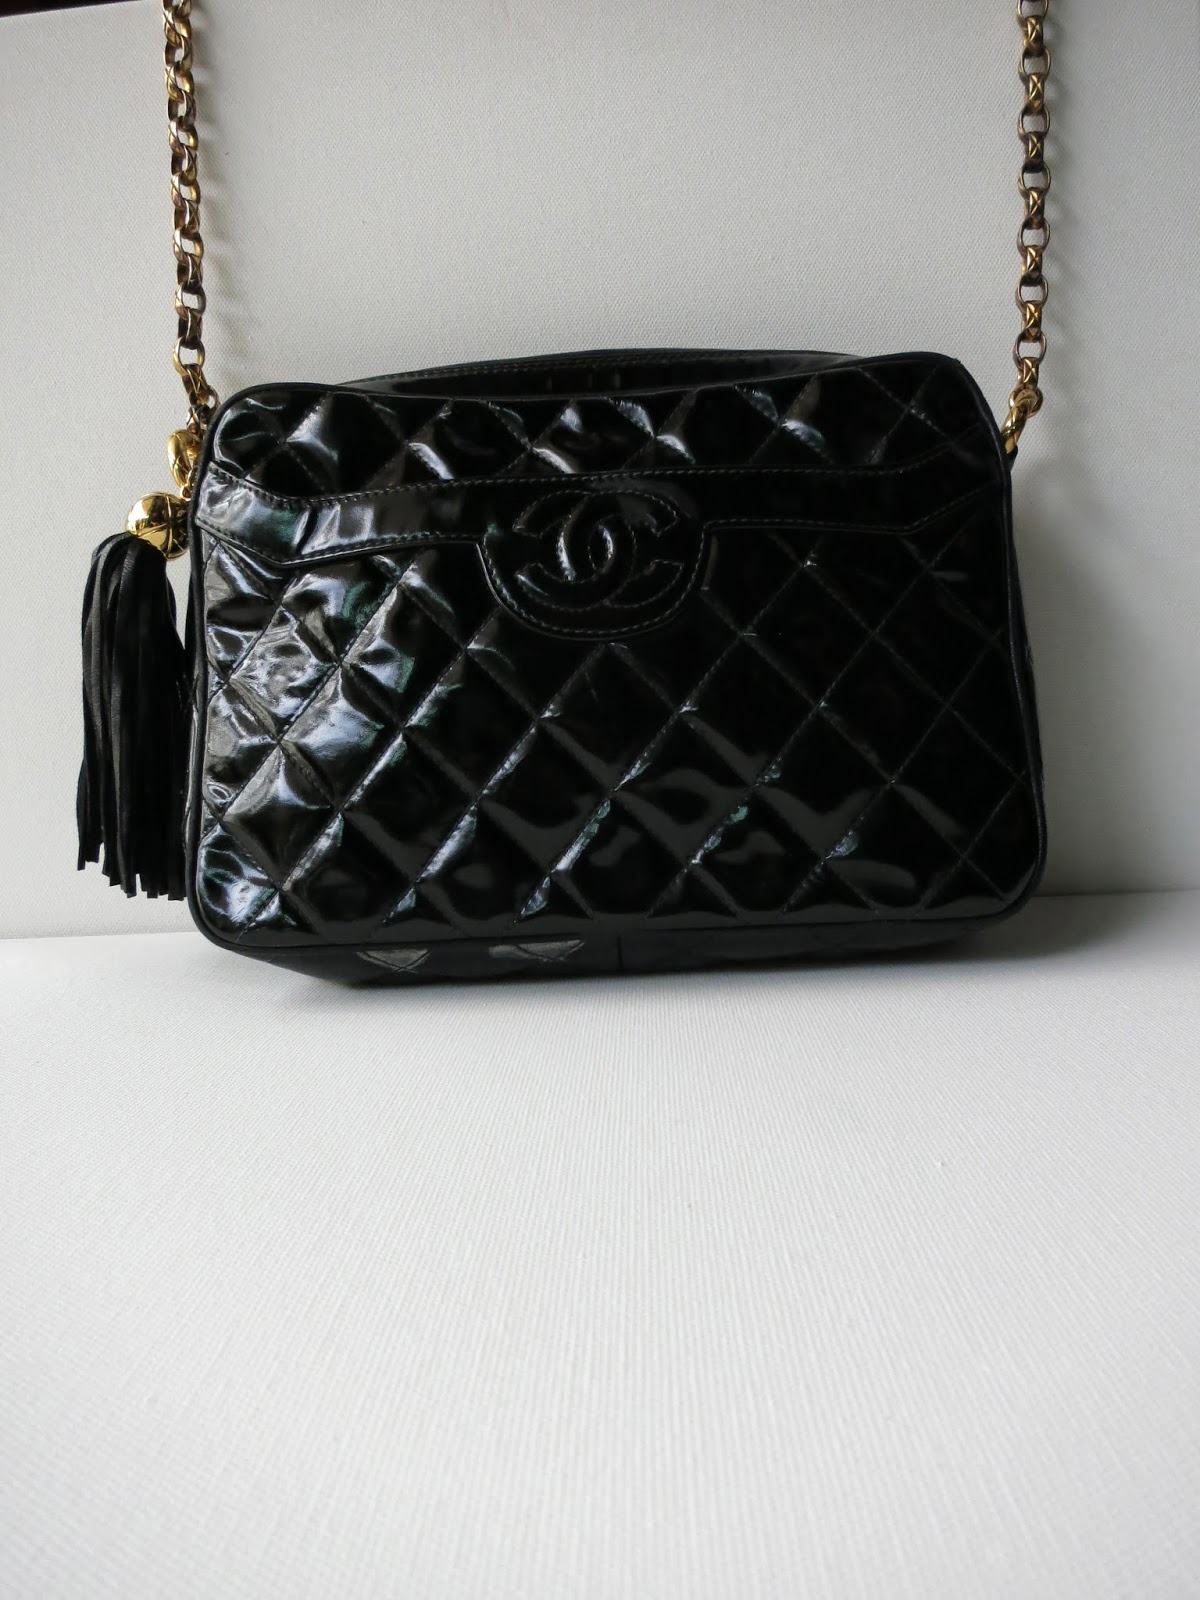 98622ca22931ec CHANEL CC LOGO DIAMOND QUILTED BLACK PATENT LEATHER TASSEL SHOULDER BAG  PURSE